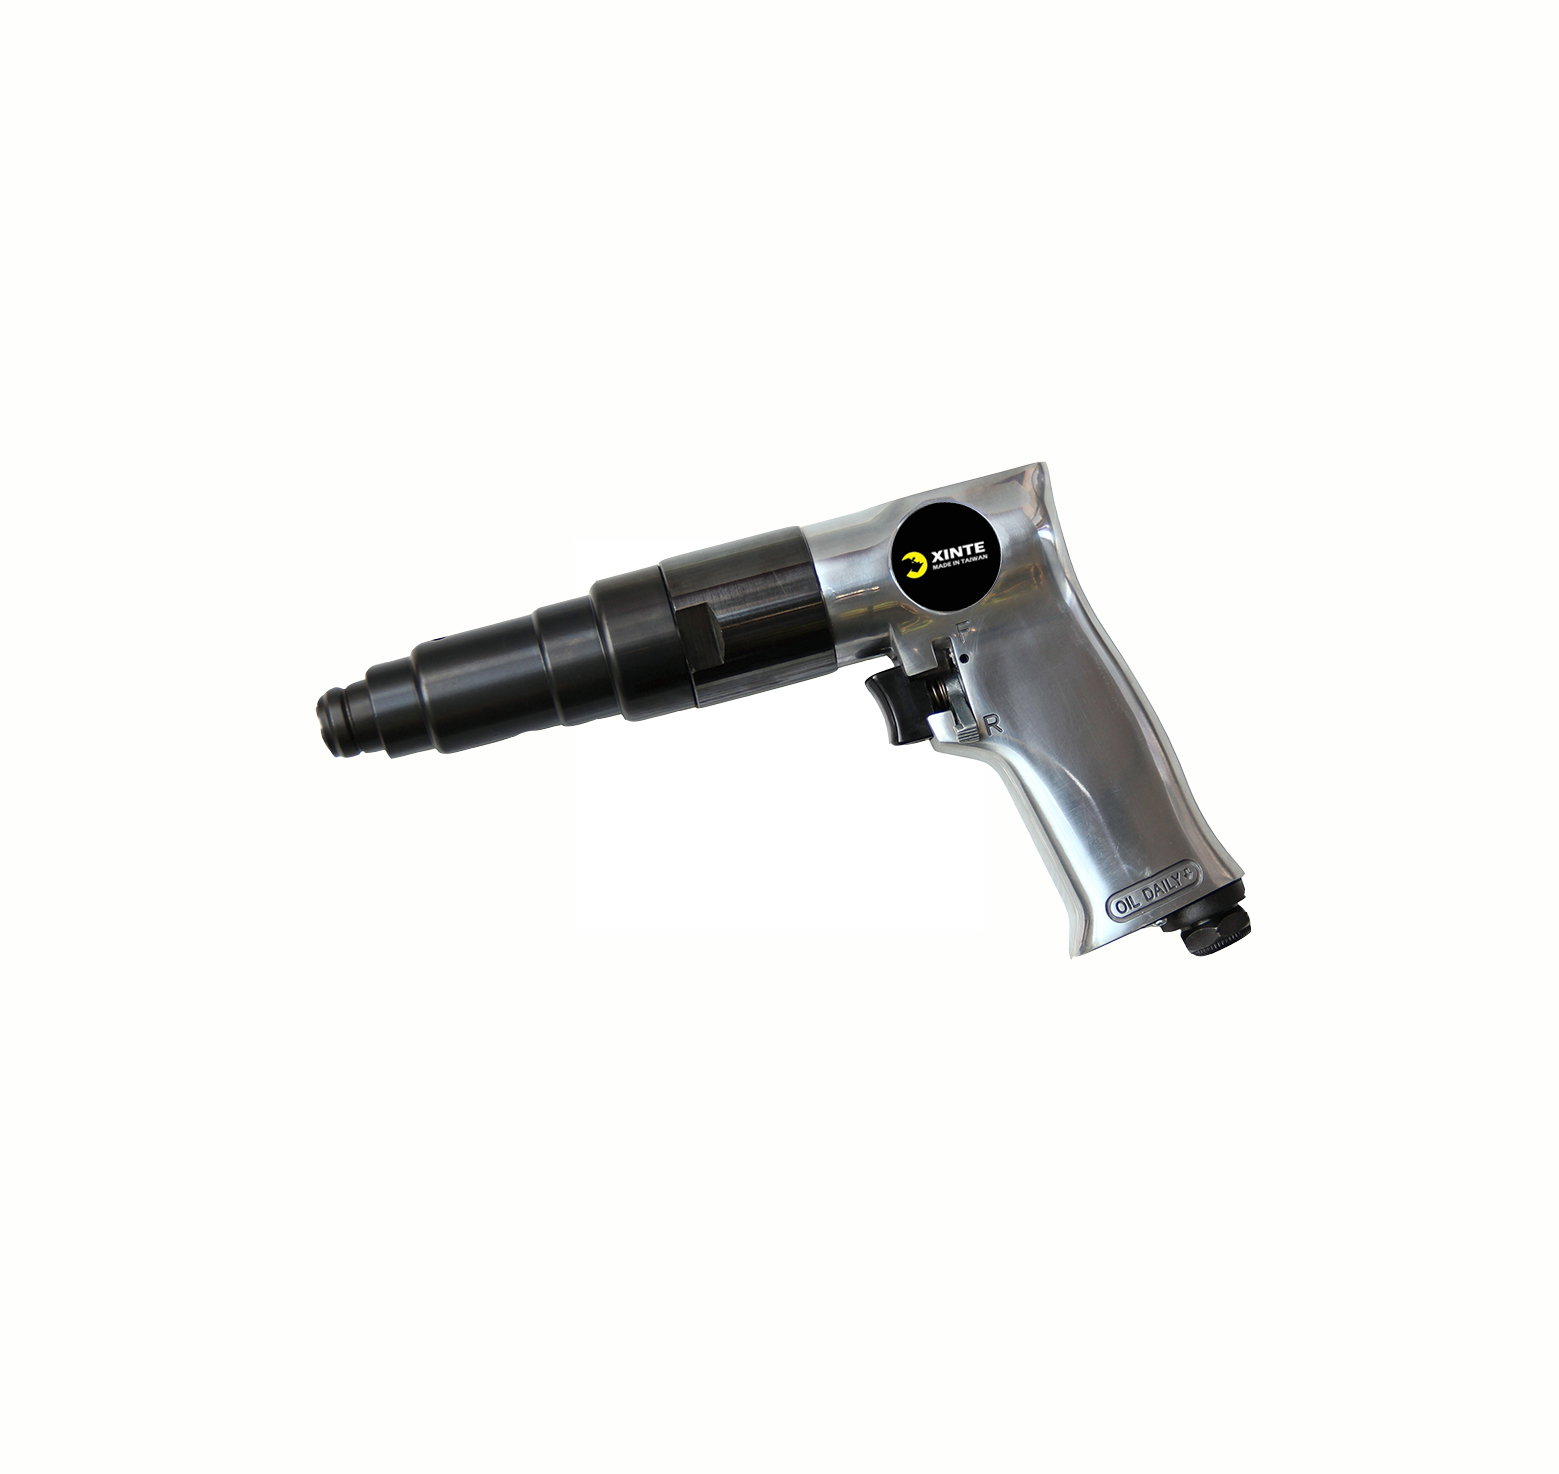 XT-54080 Adjustable clutch air screwdriver